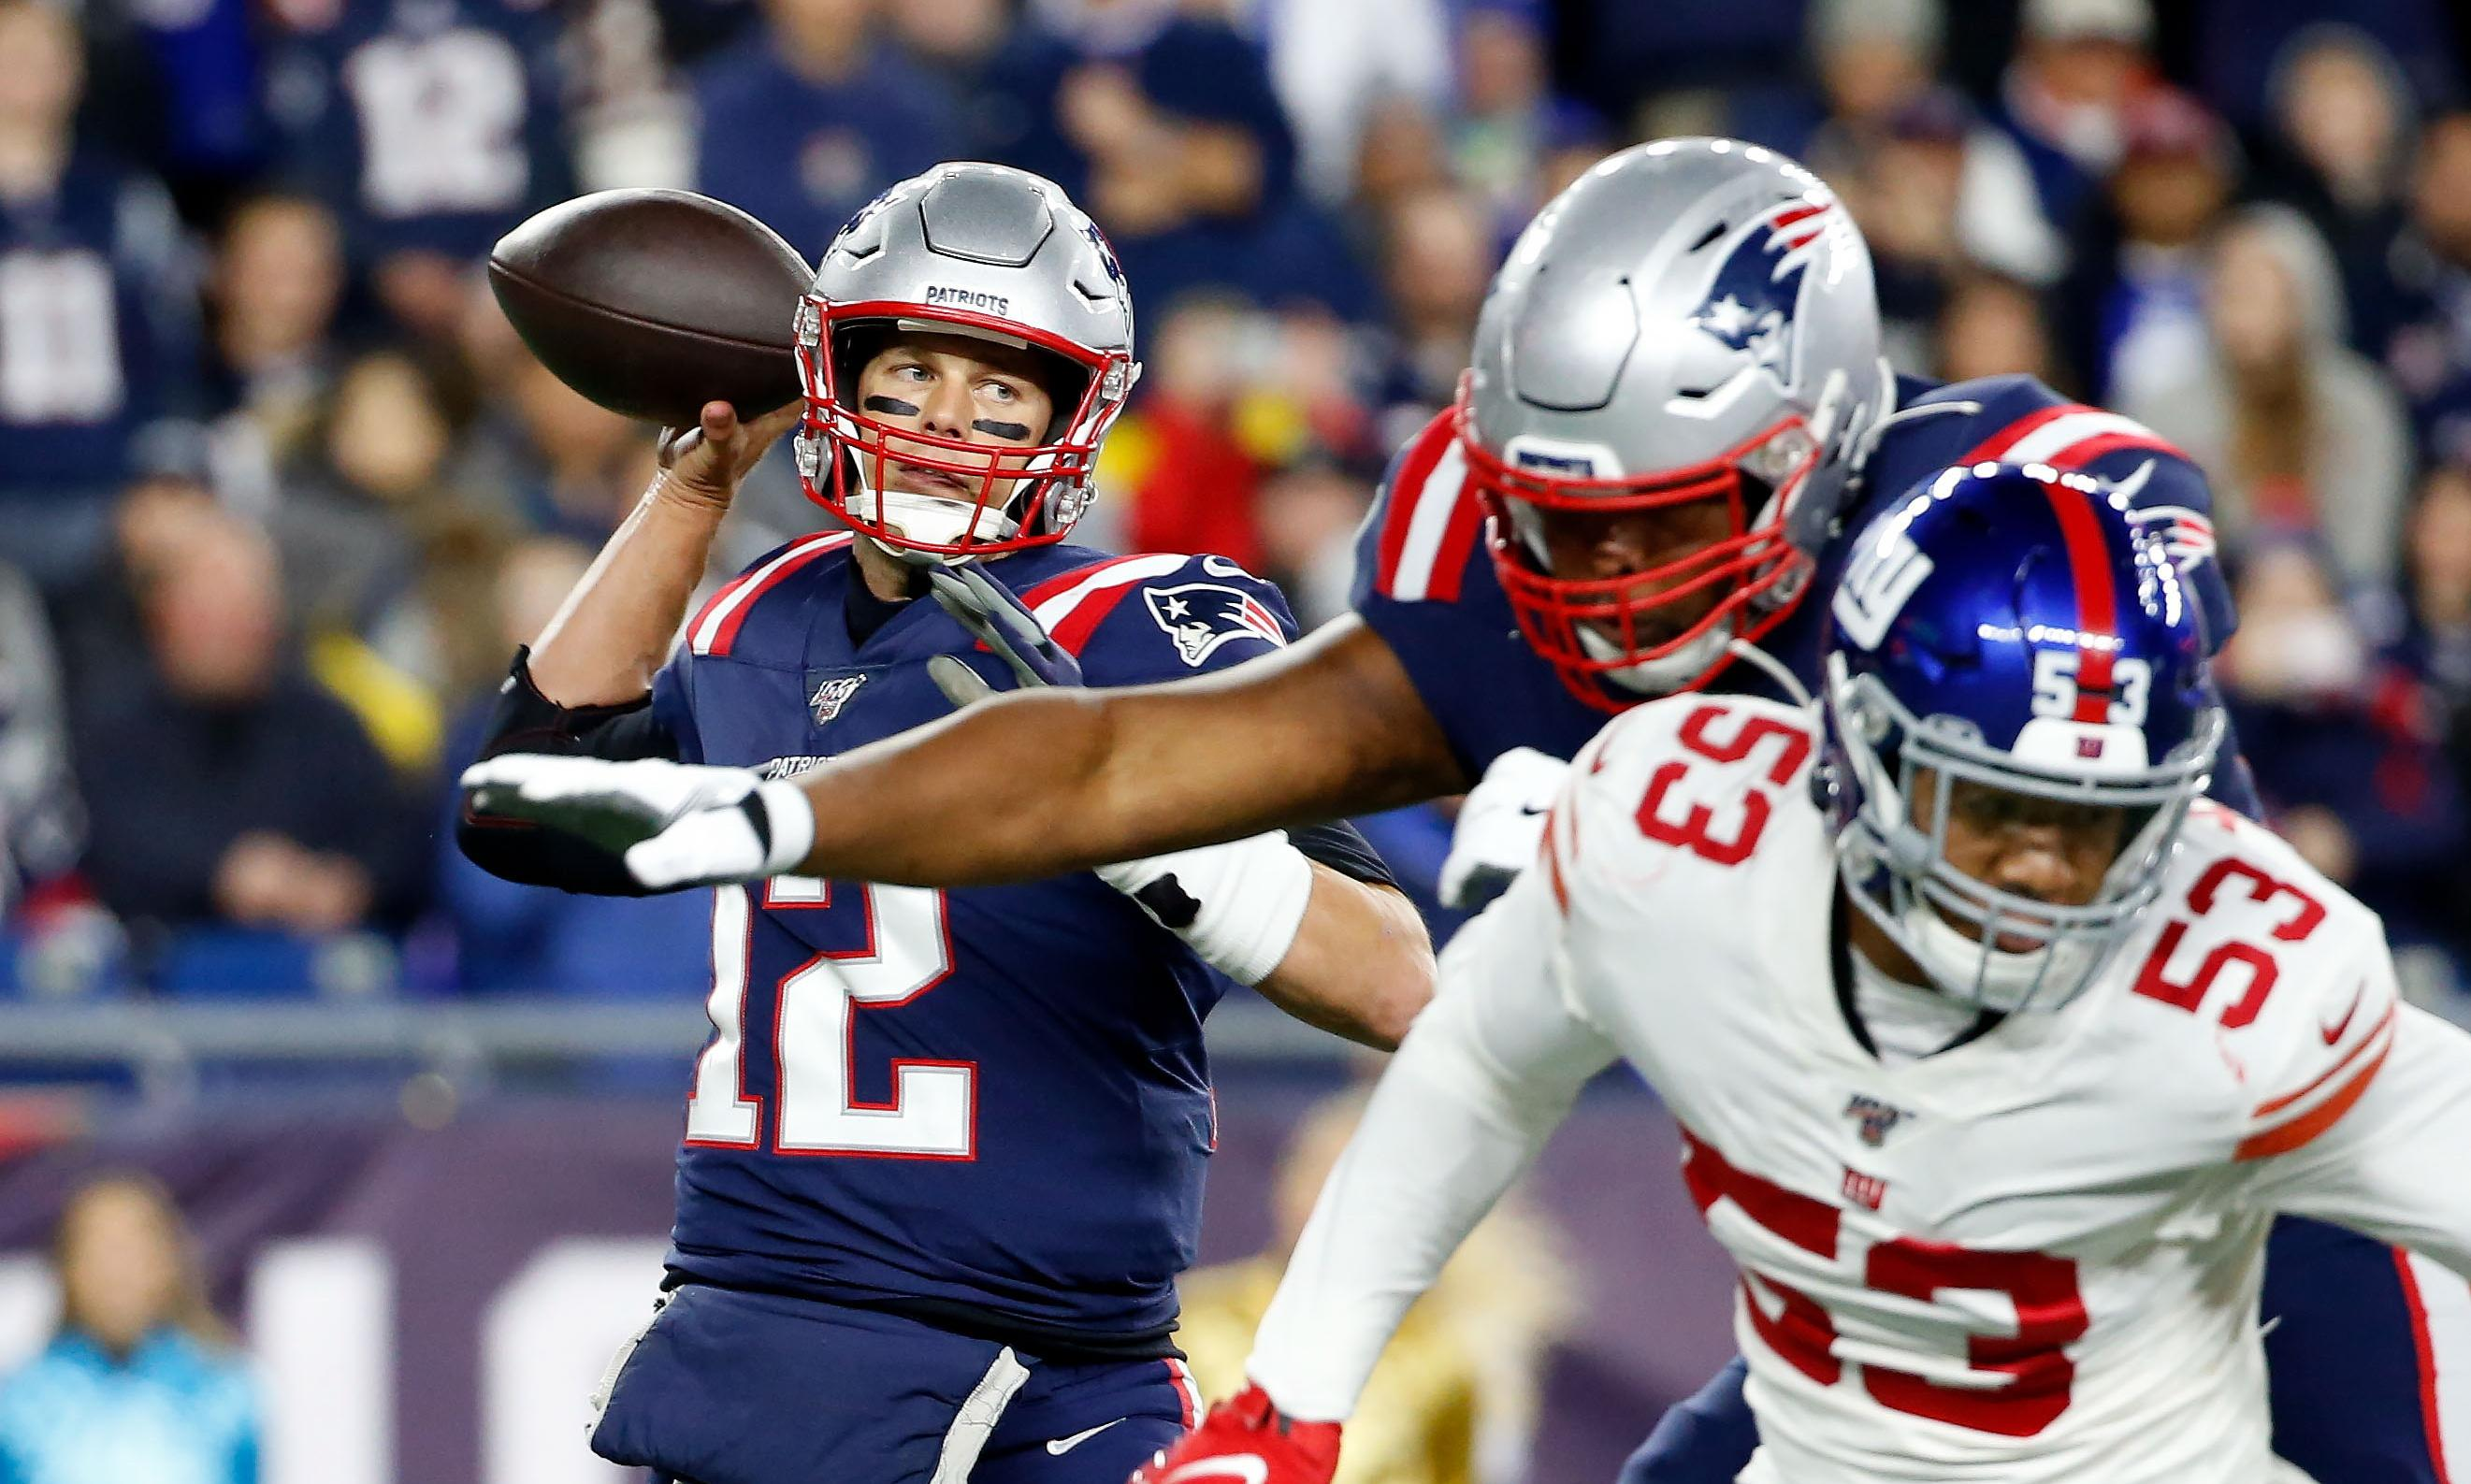 New England Patriots' dominant defense tames Giants to stay unbeaten